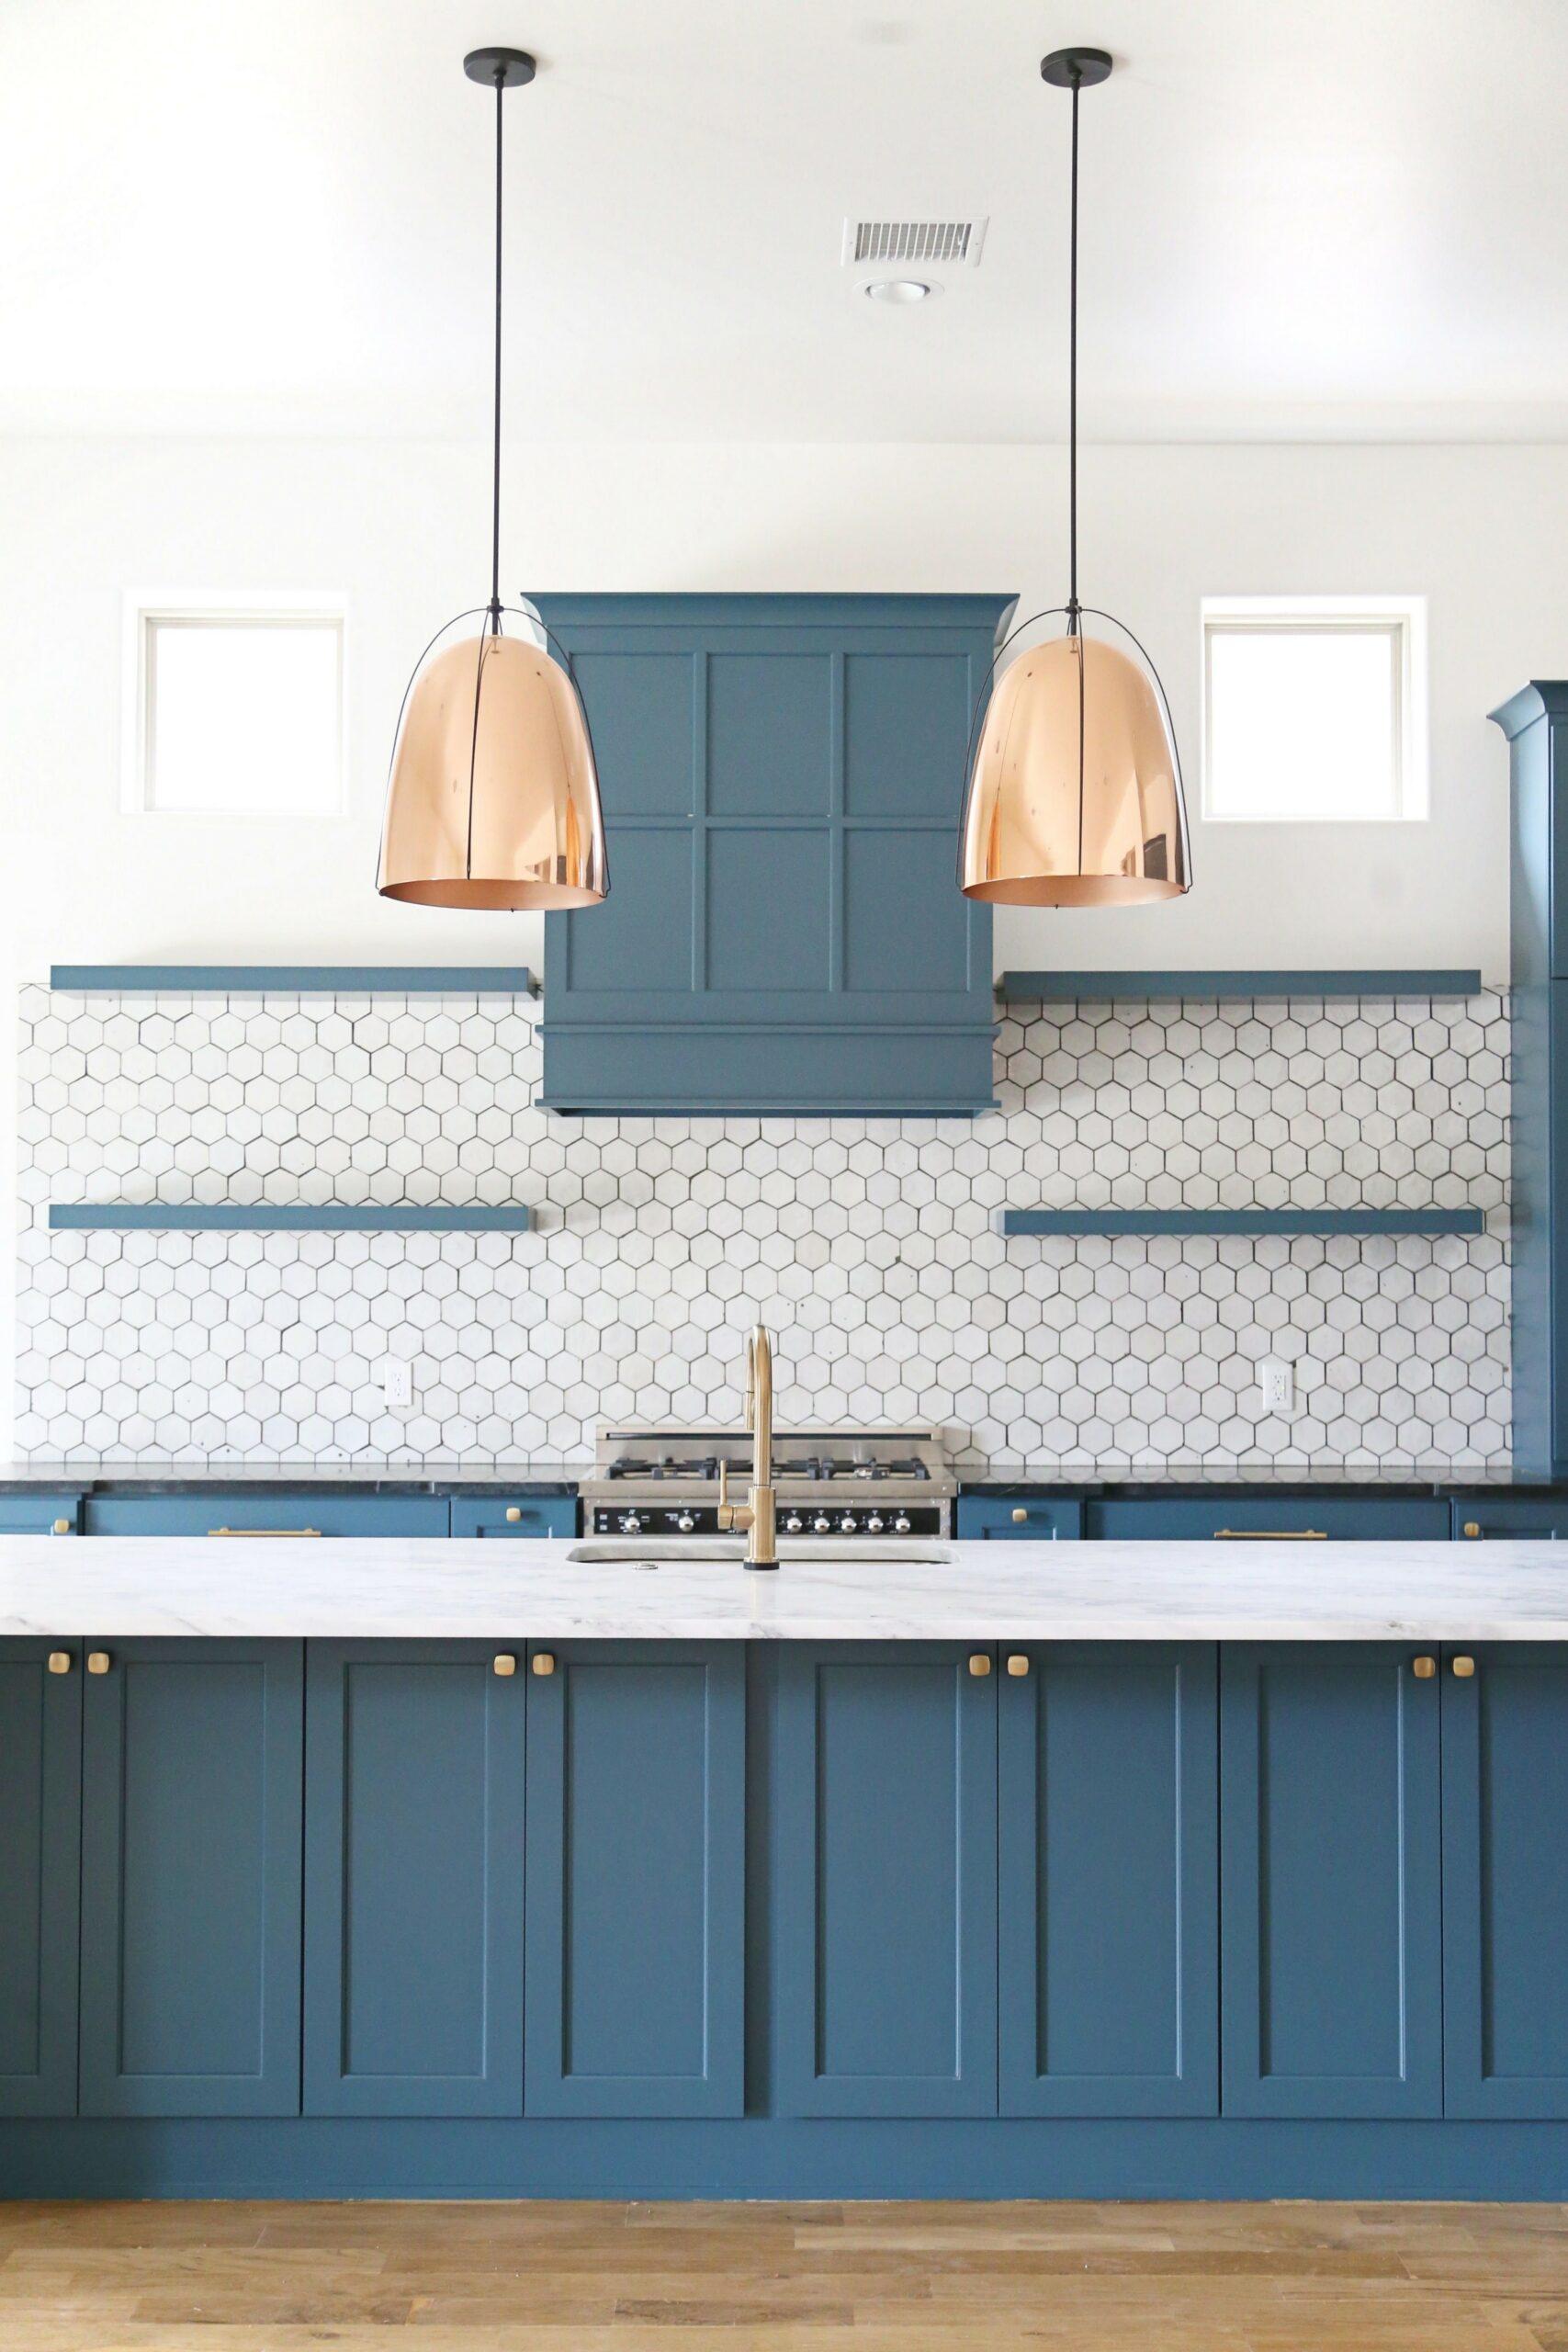 71 Painted Kitchen Cabinets Ideas For Home Decor 18